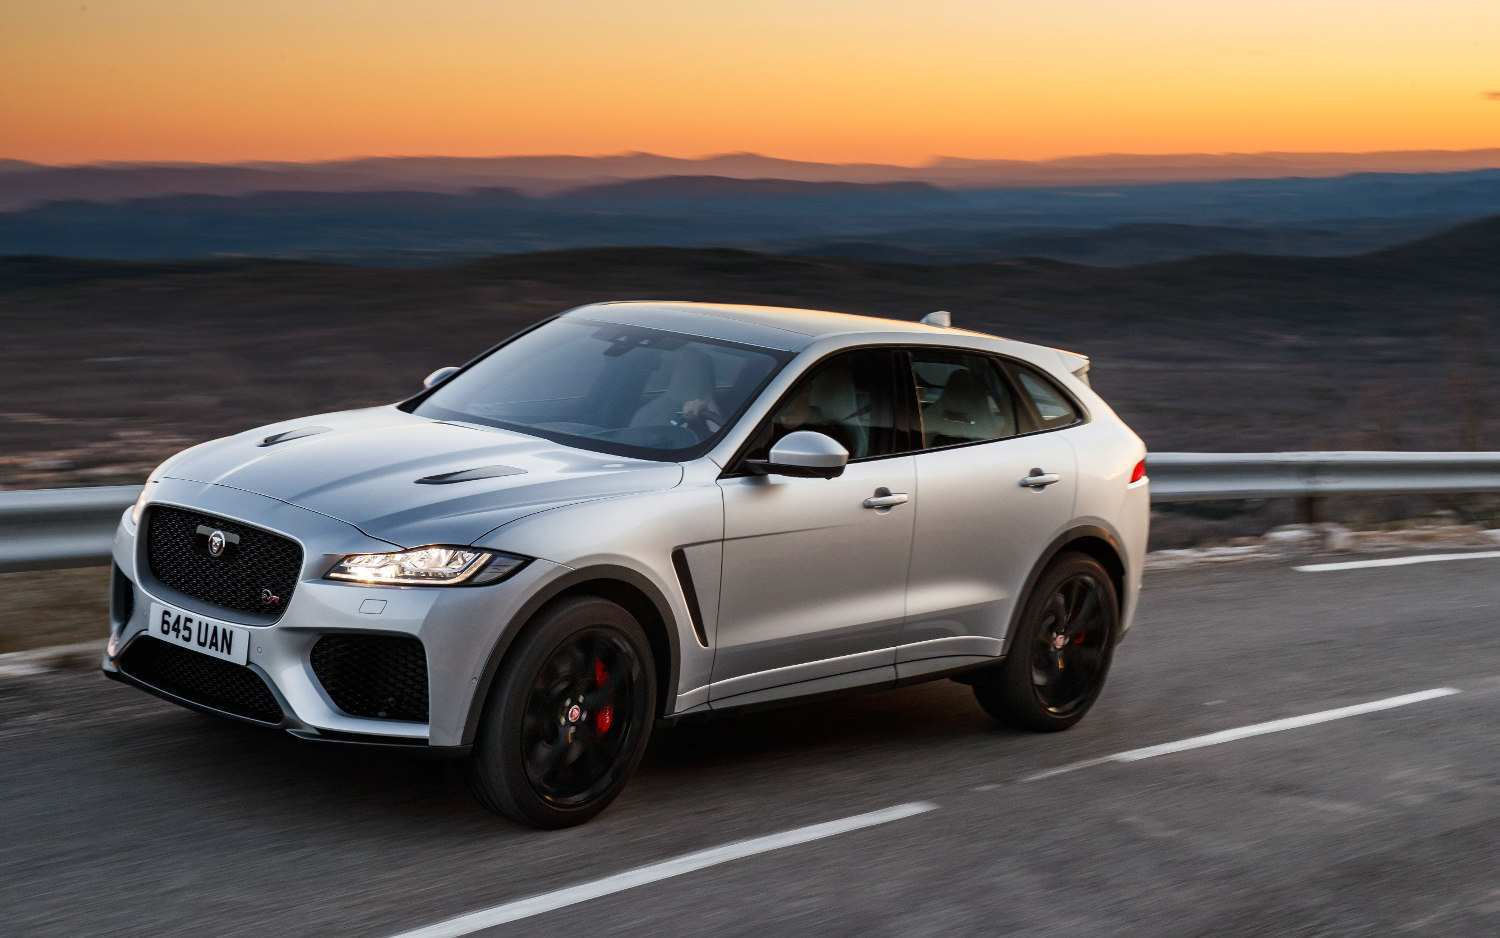 41 All New Jaguar Hybrid 2020 Review And Release Date